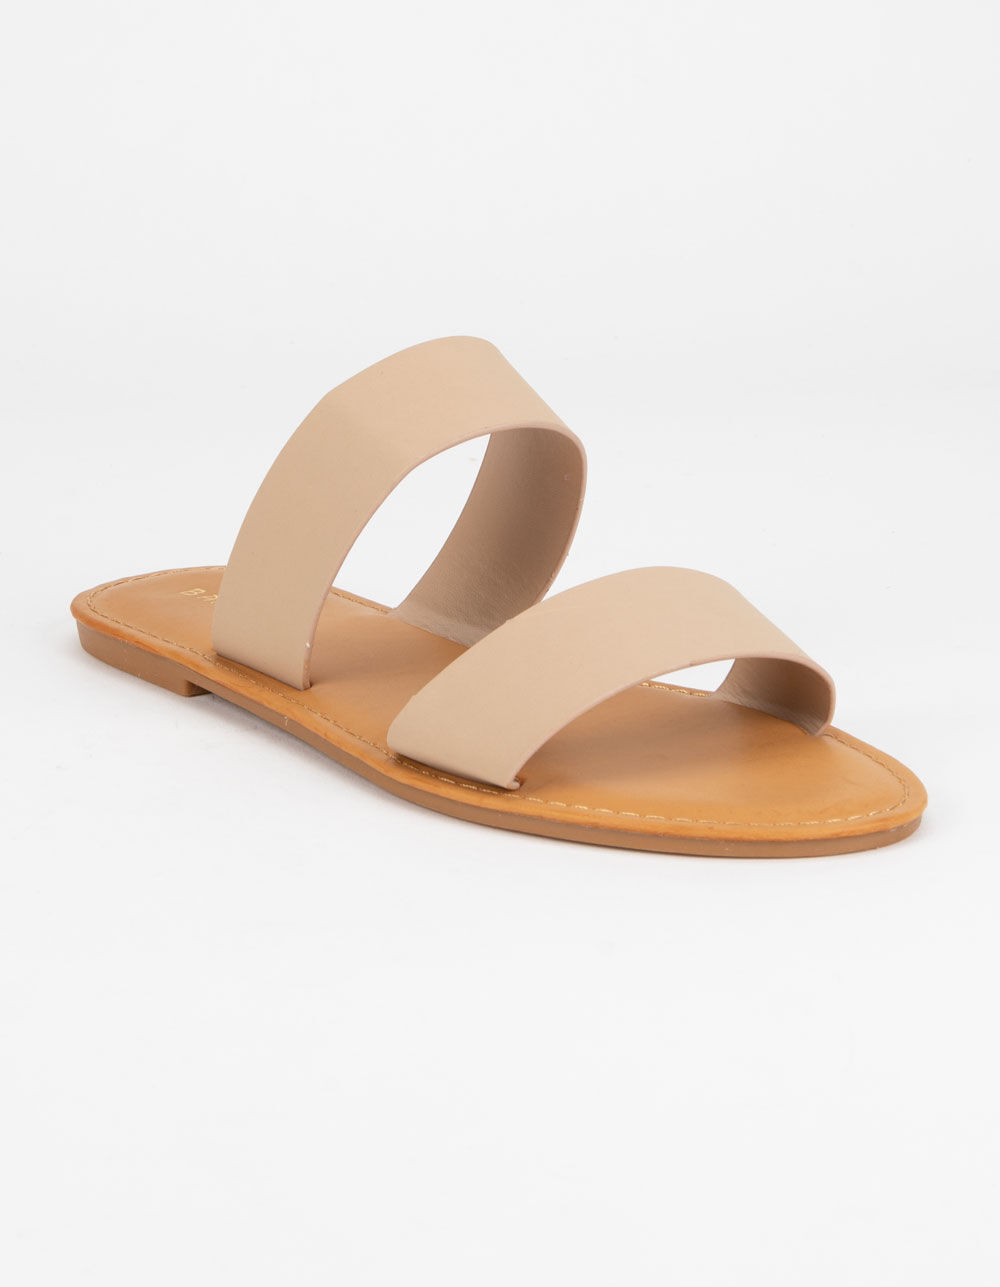 Image of BAMBOO DOUBLE STRAP NUDE SANDALS